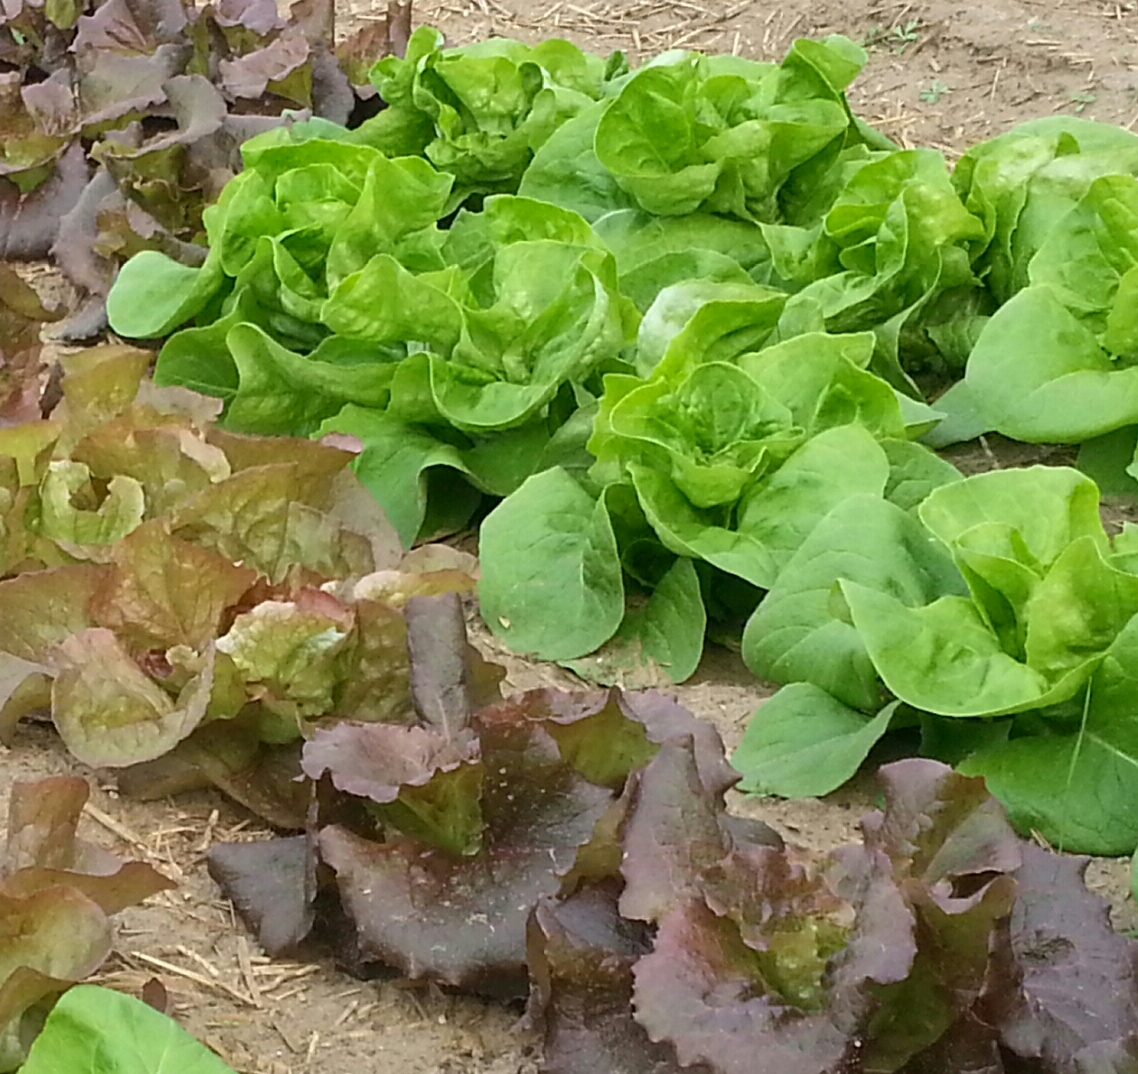 Butterhead lettuce, and others